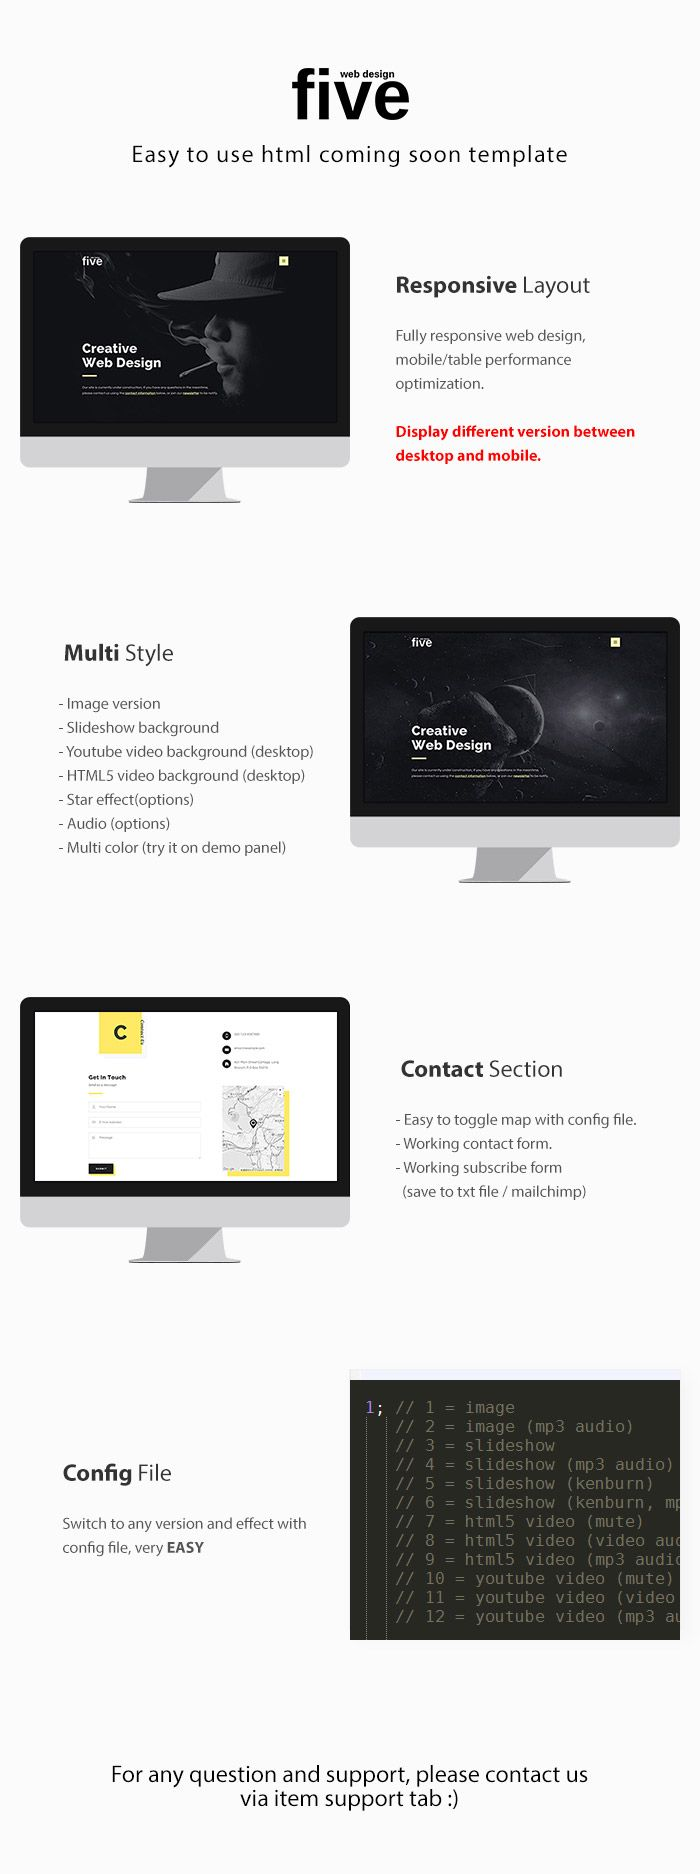 Popular youtube design star html html html html html html html - Five Easy To Use Coming Soon Template